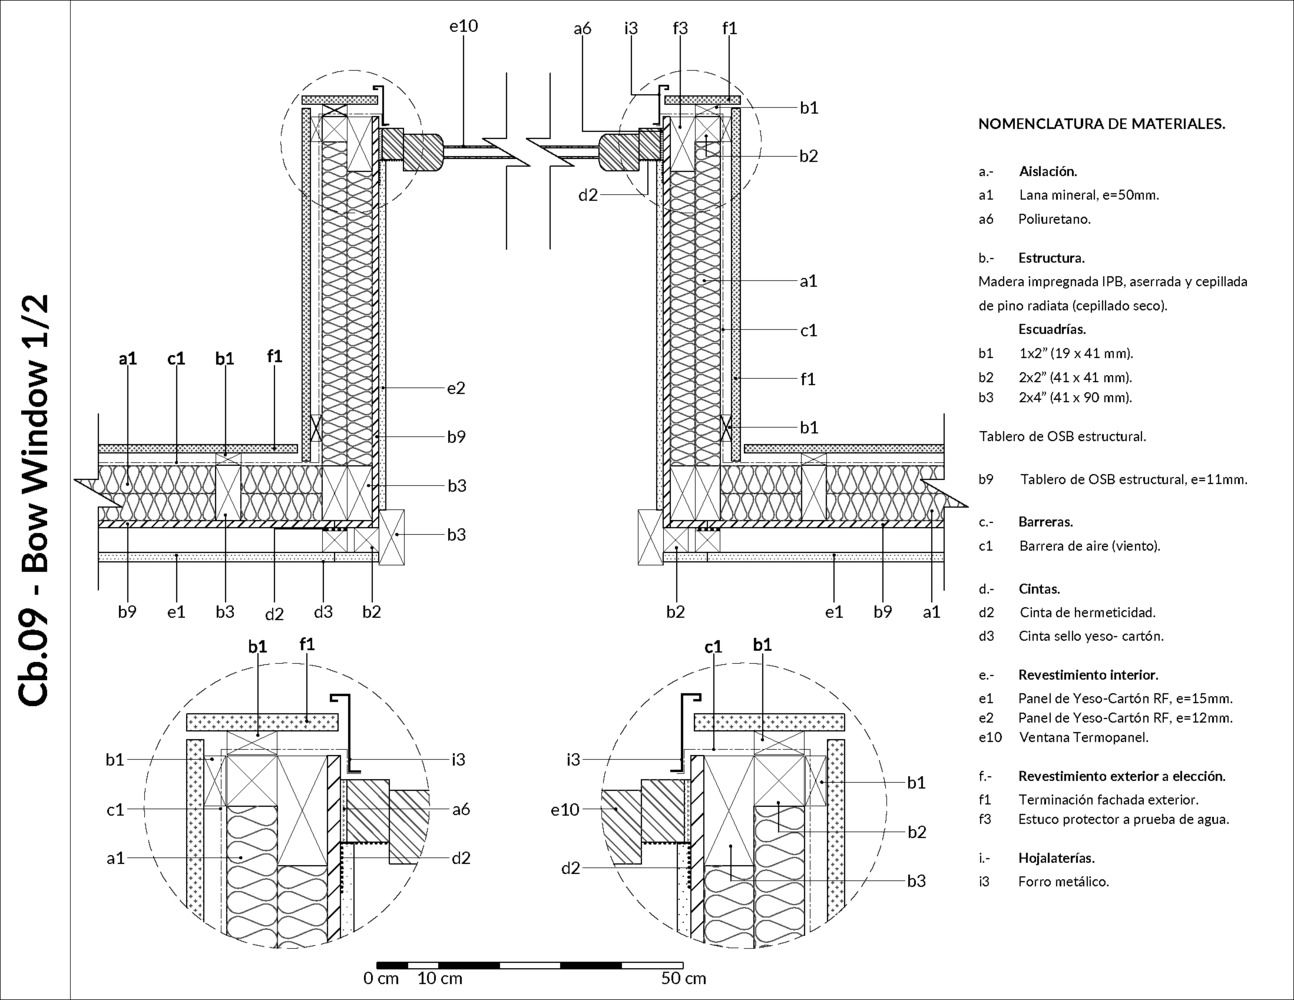 Gallery of From Foundations to Roofs: 10 Detailed Wood